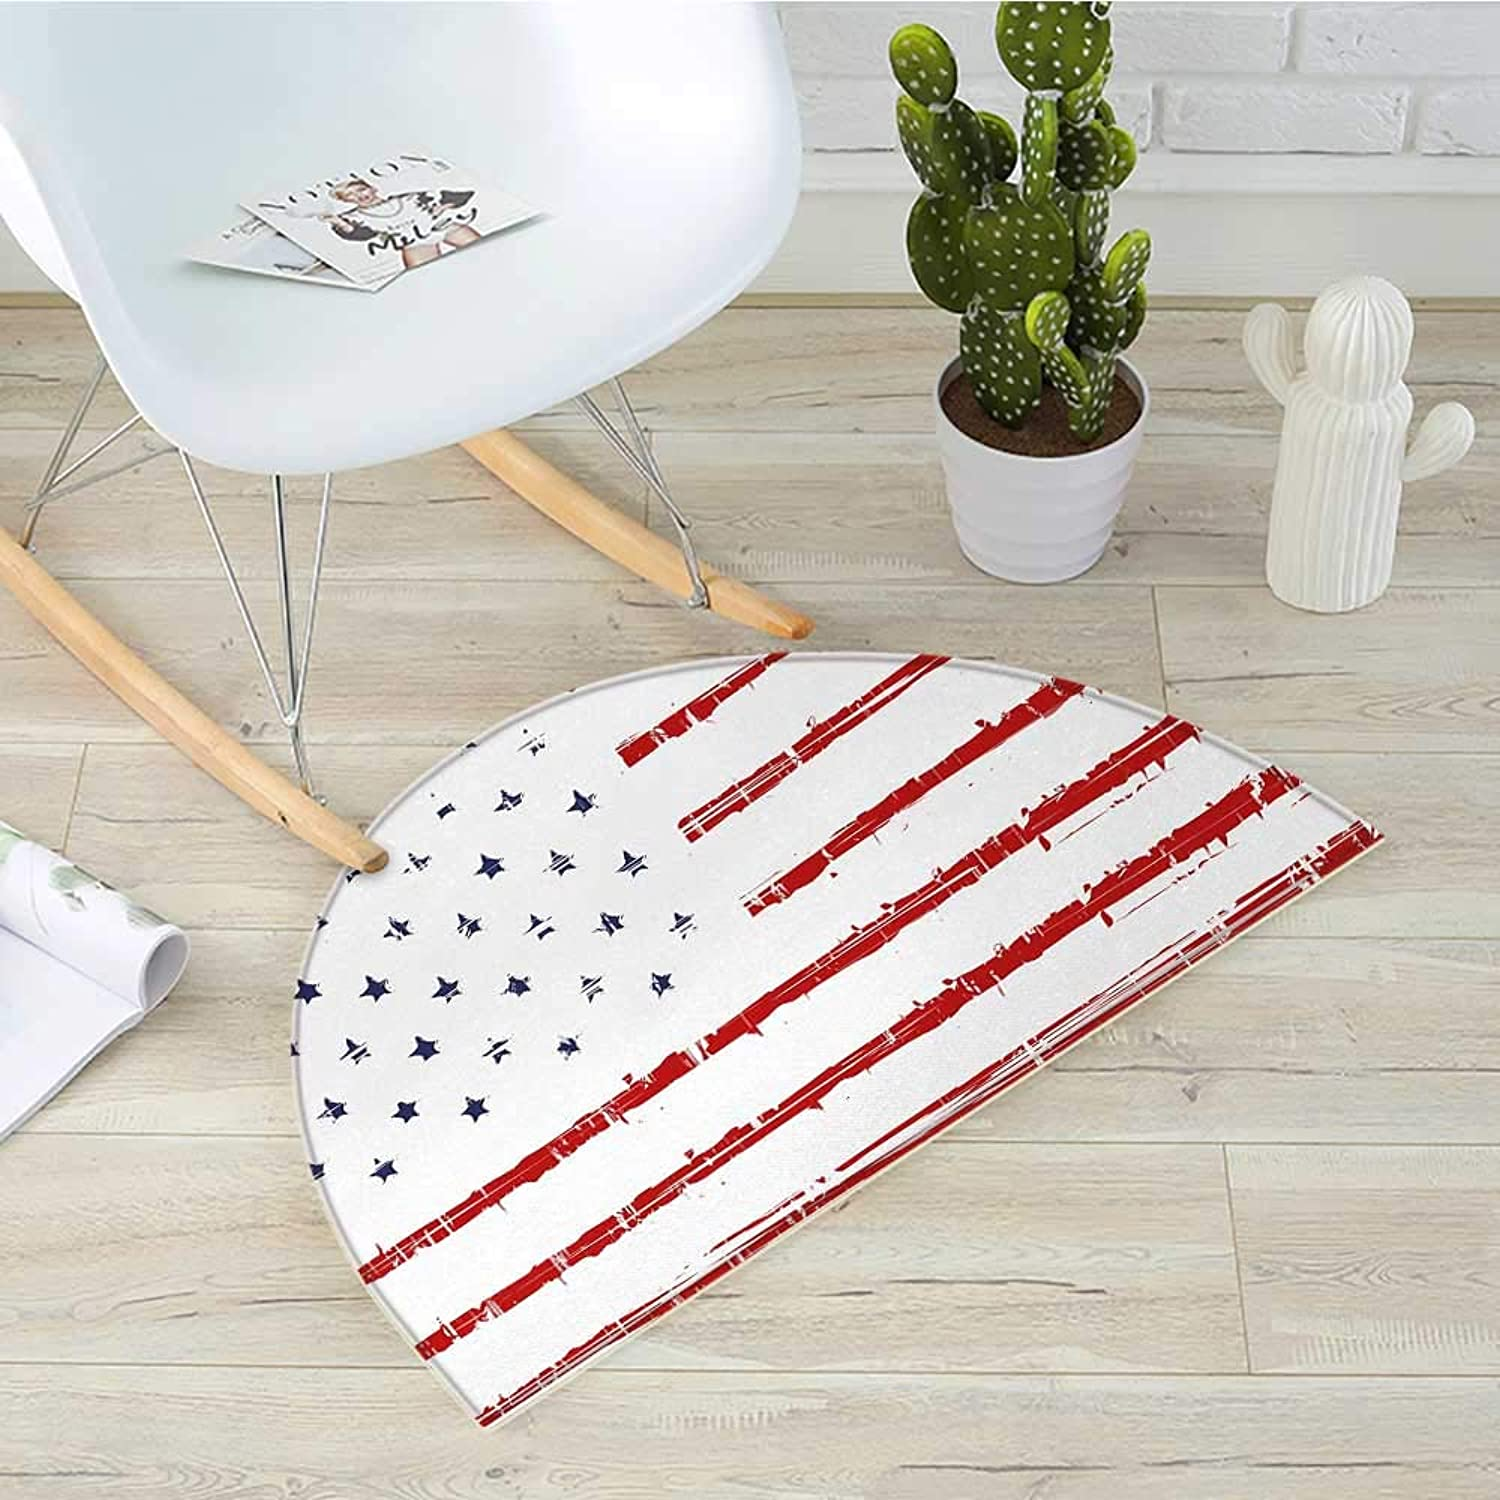 American Semicircular CushionVector Grunge Texture Flag of United States of America Illustration Print Entry Door Mat H 31.5  xD 47.2  bluee White and Red